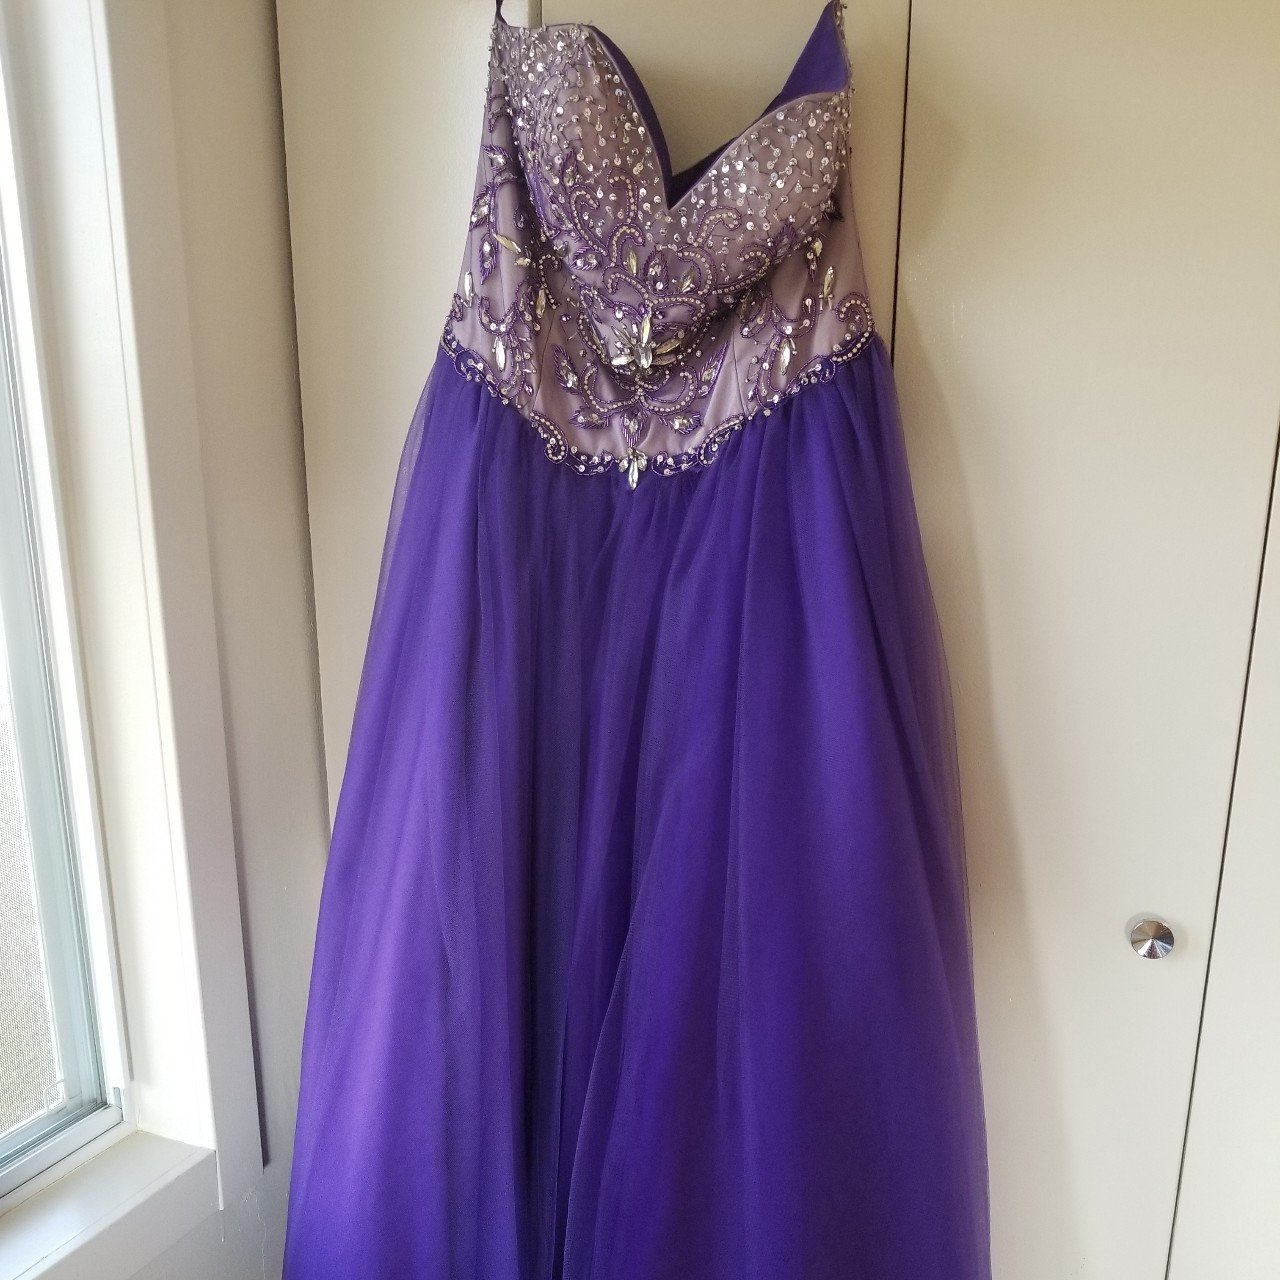 1e2db74ef1 Size 14 Layla K prom ball gown dress. Color is purple